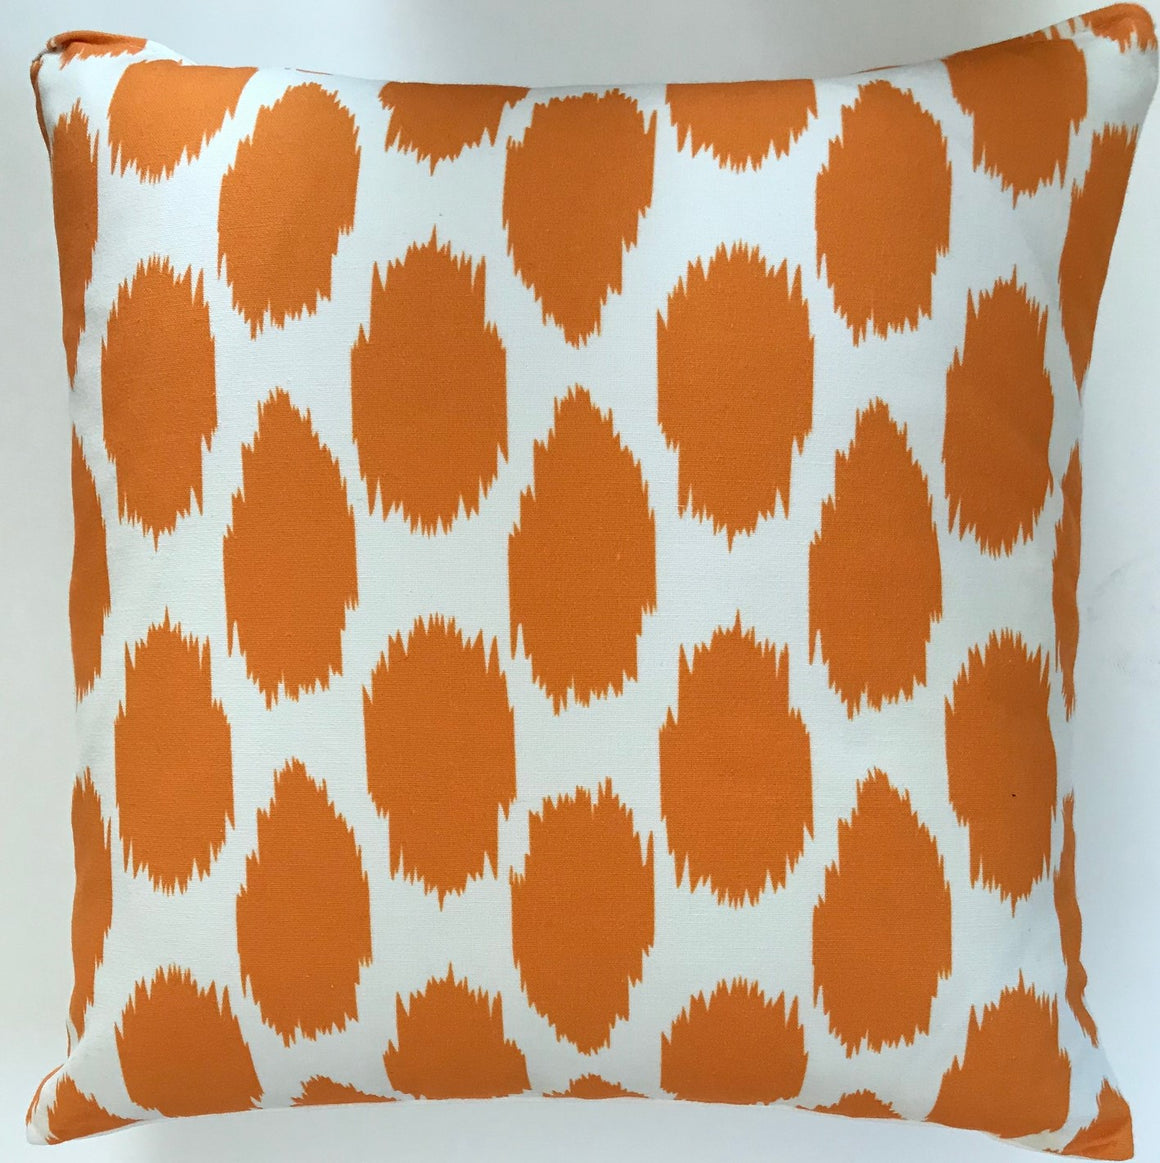 OC29 Cheeky Ikat Print Tangerine organic cotton pillow cover